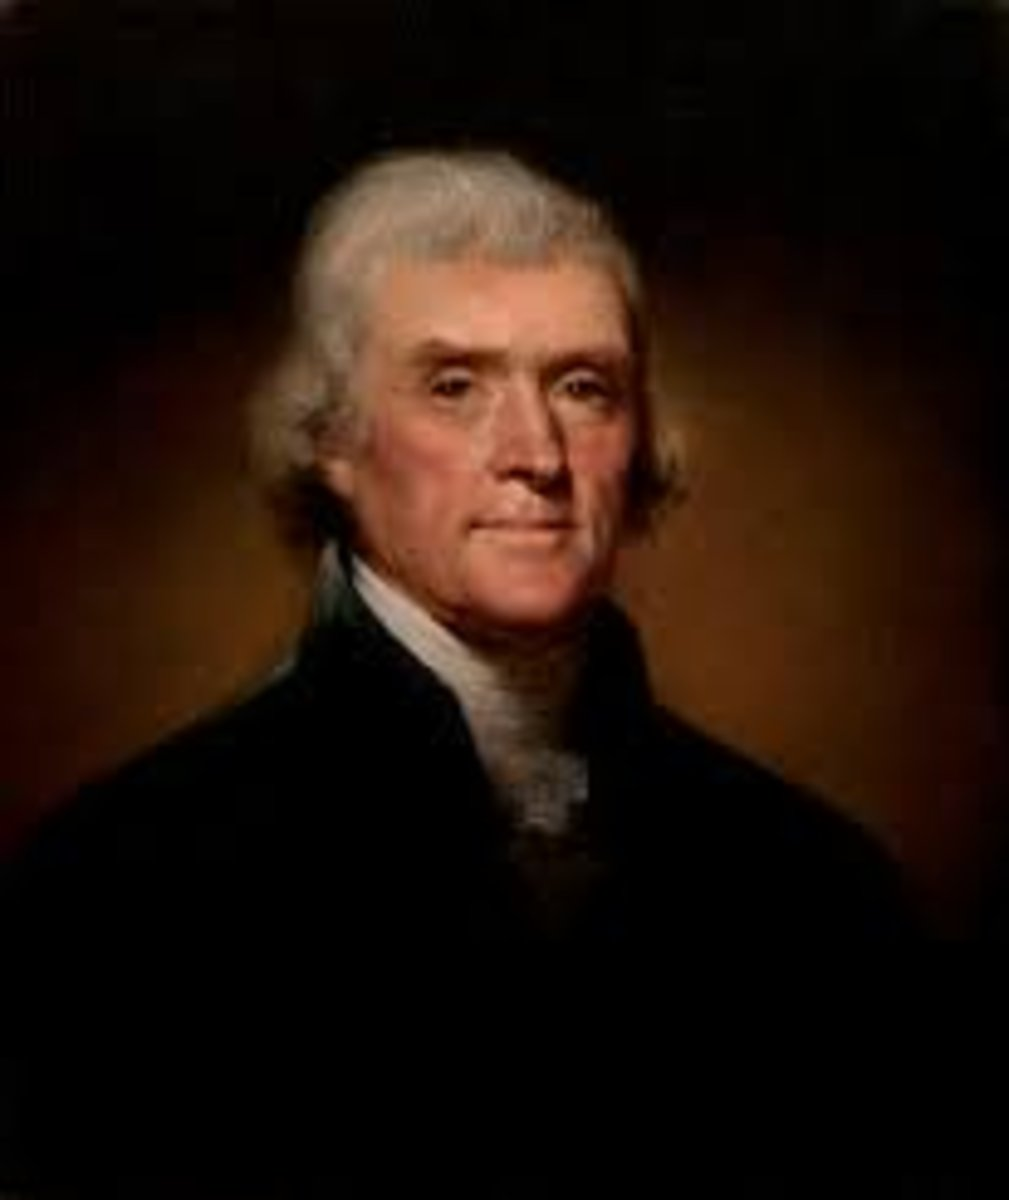 Thomas Jefferson Biography – Third President of the United States